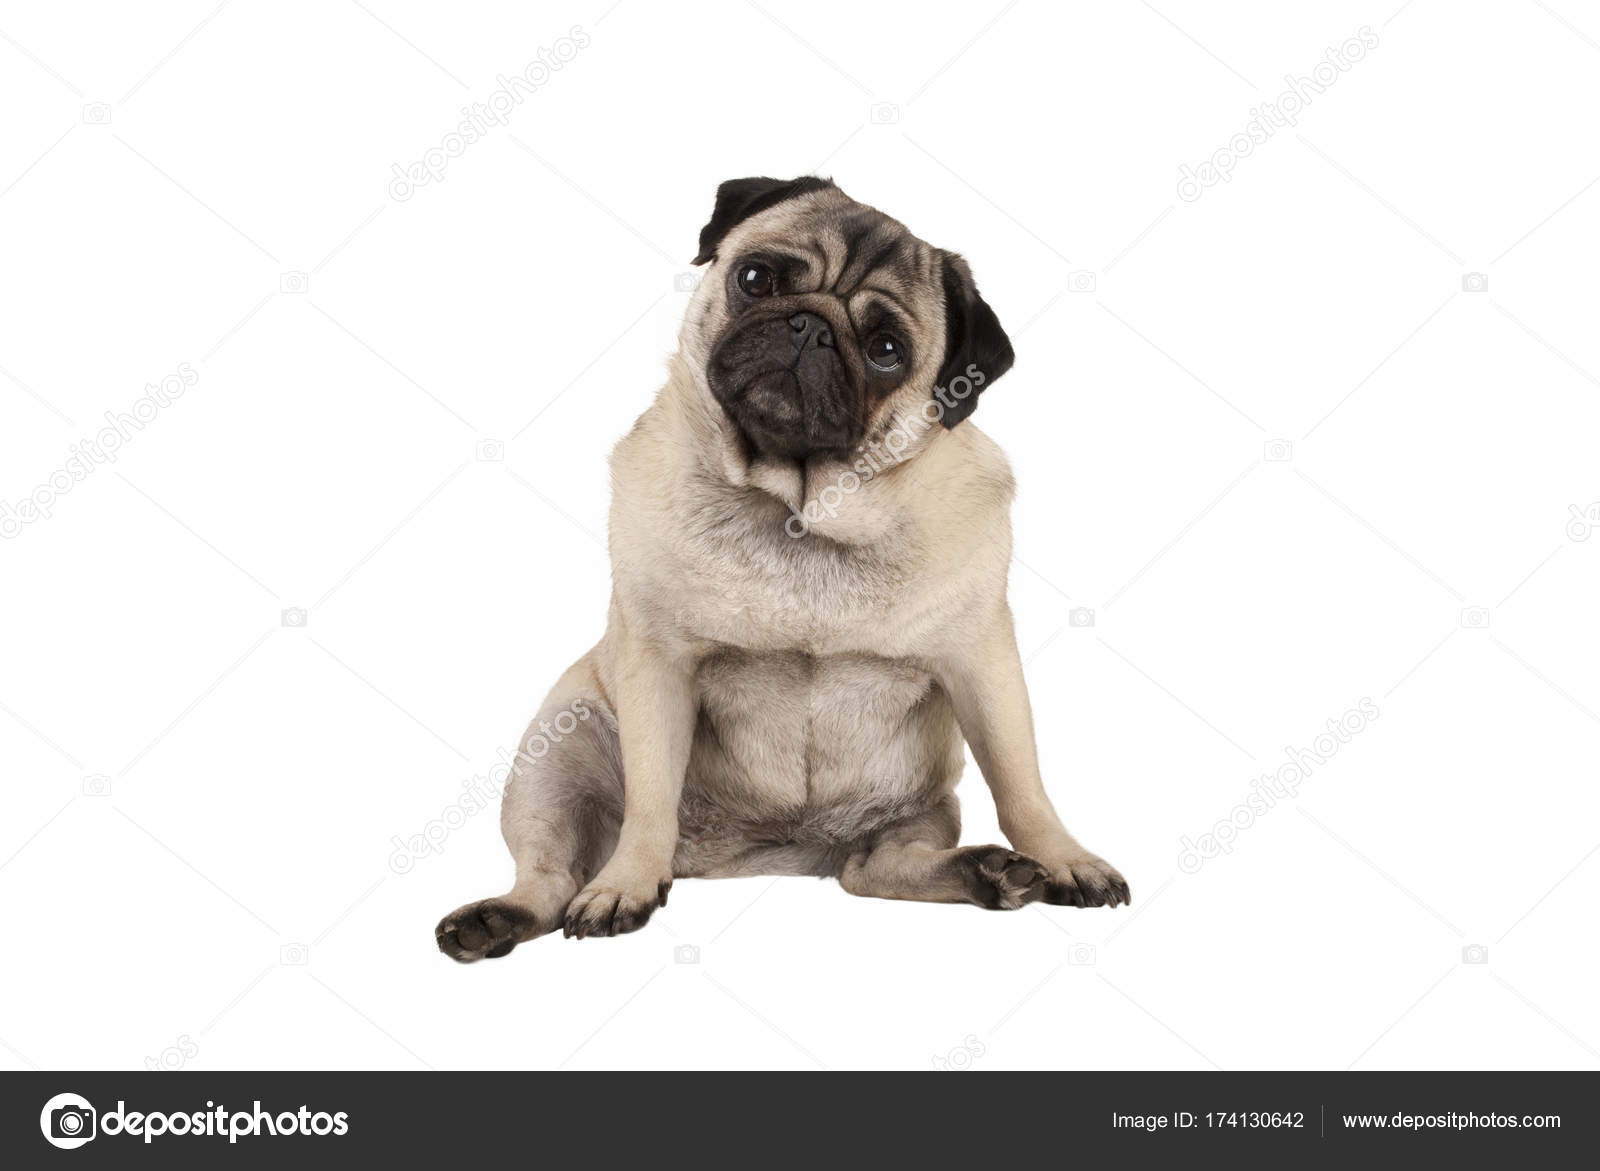 Pictures Pug Puppy Funny Funny Cute Pug Puppy Dog Sitting Down Looking Amazed Stock Photo C Monicaclick1 174130642